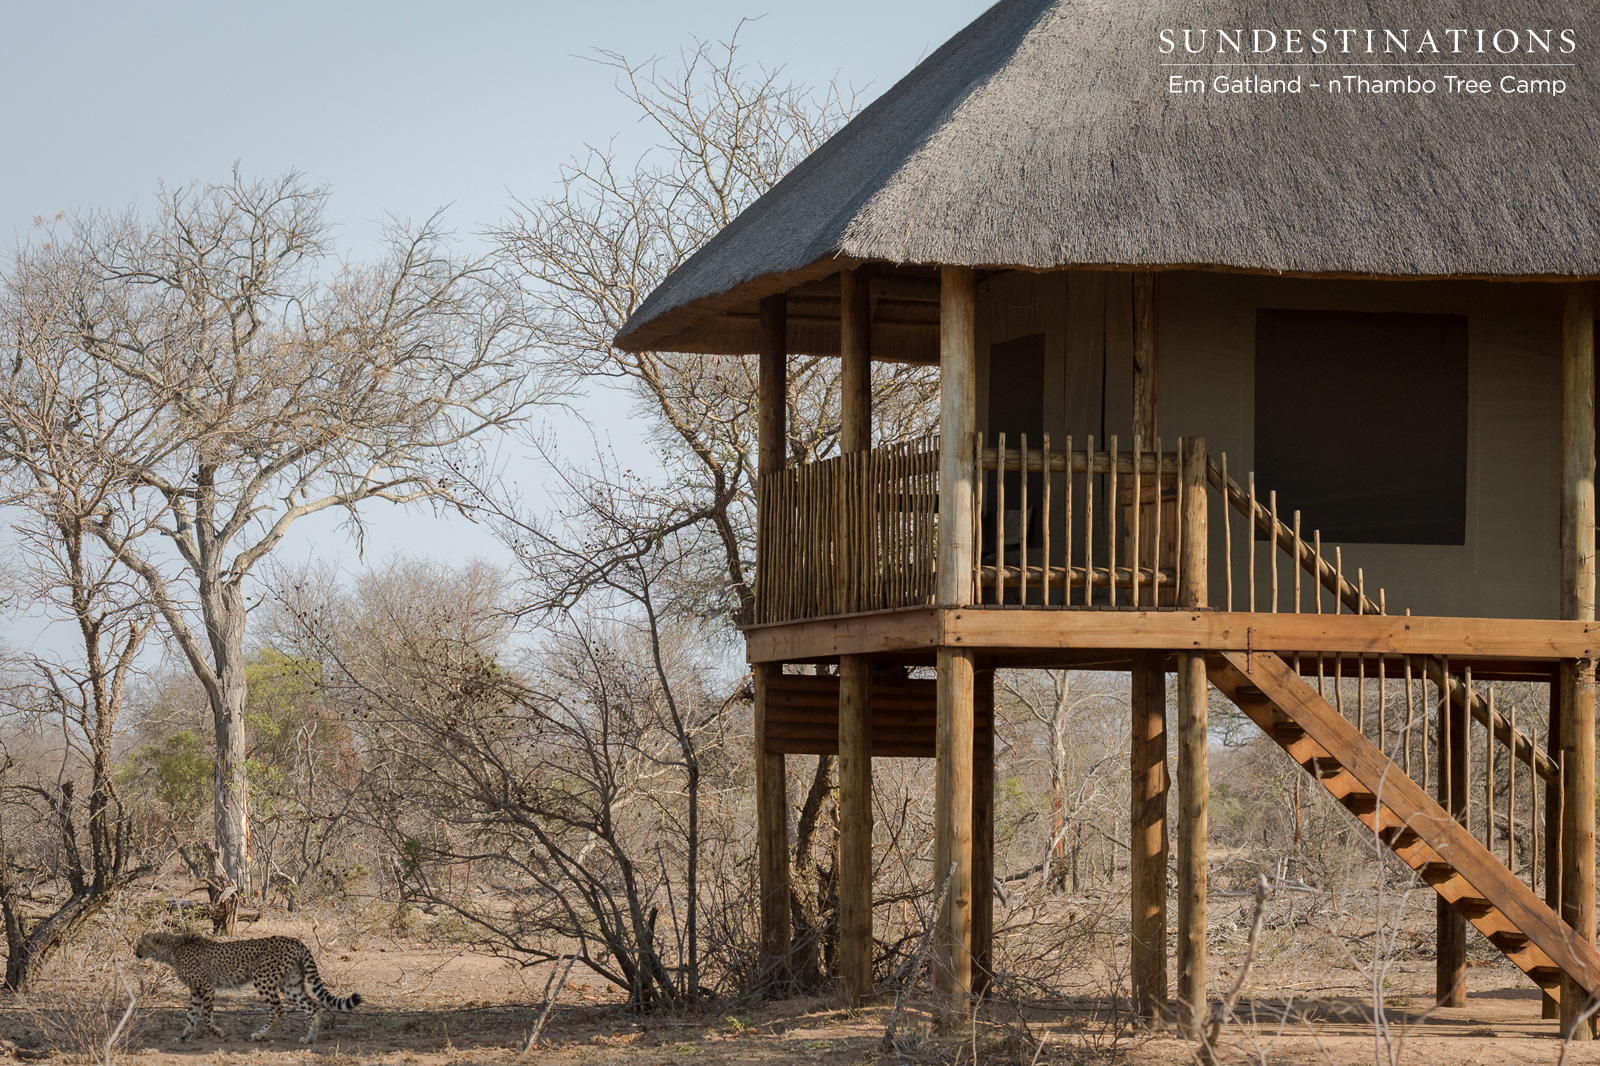 Cheetah Casually Strolls into nThambo Tree Camp